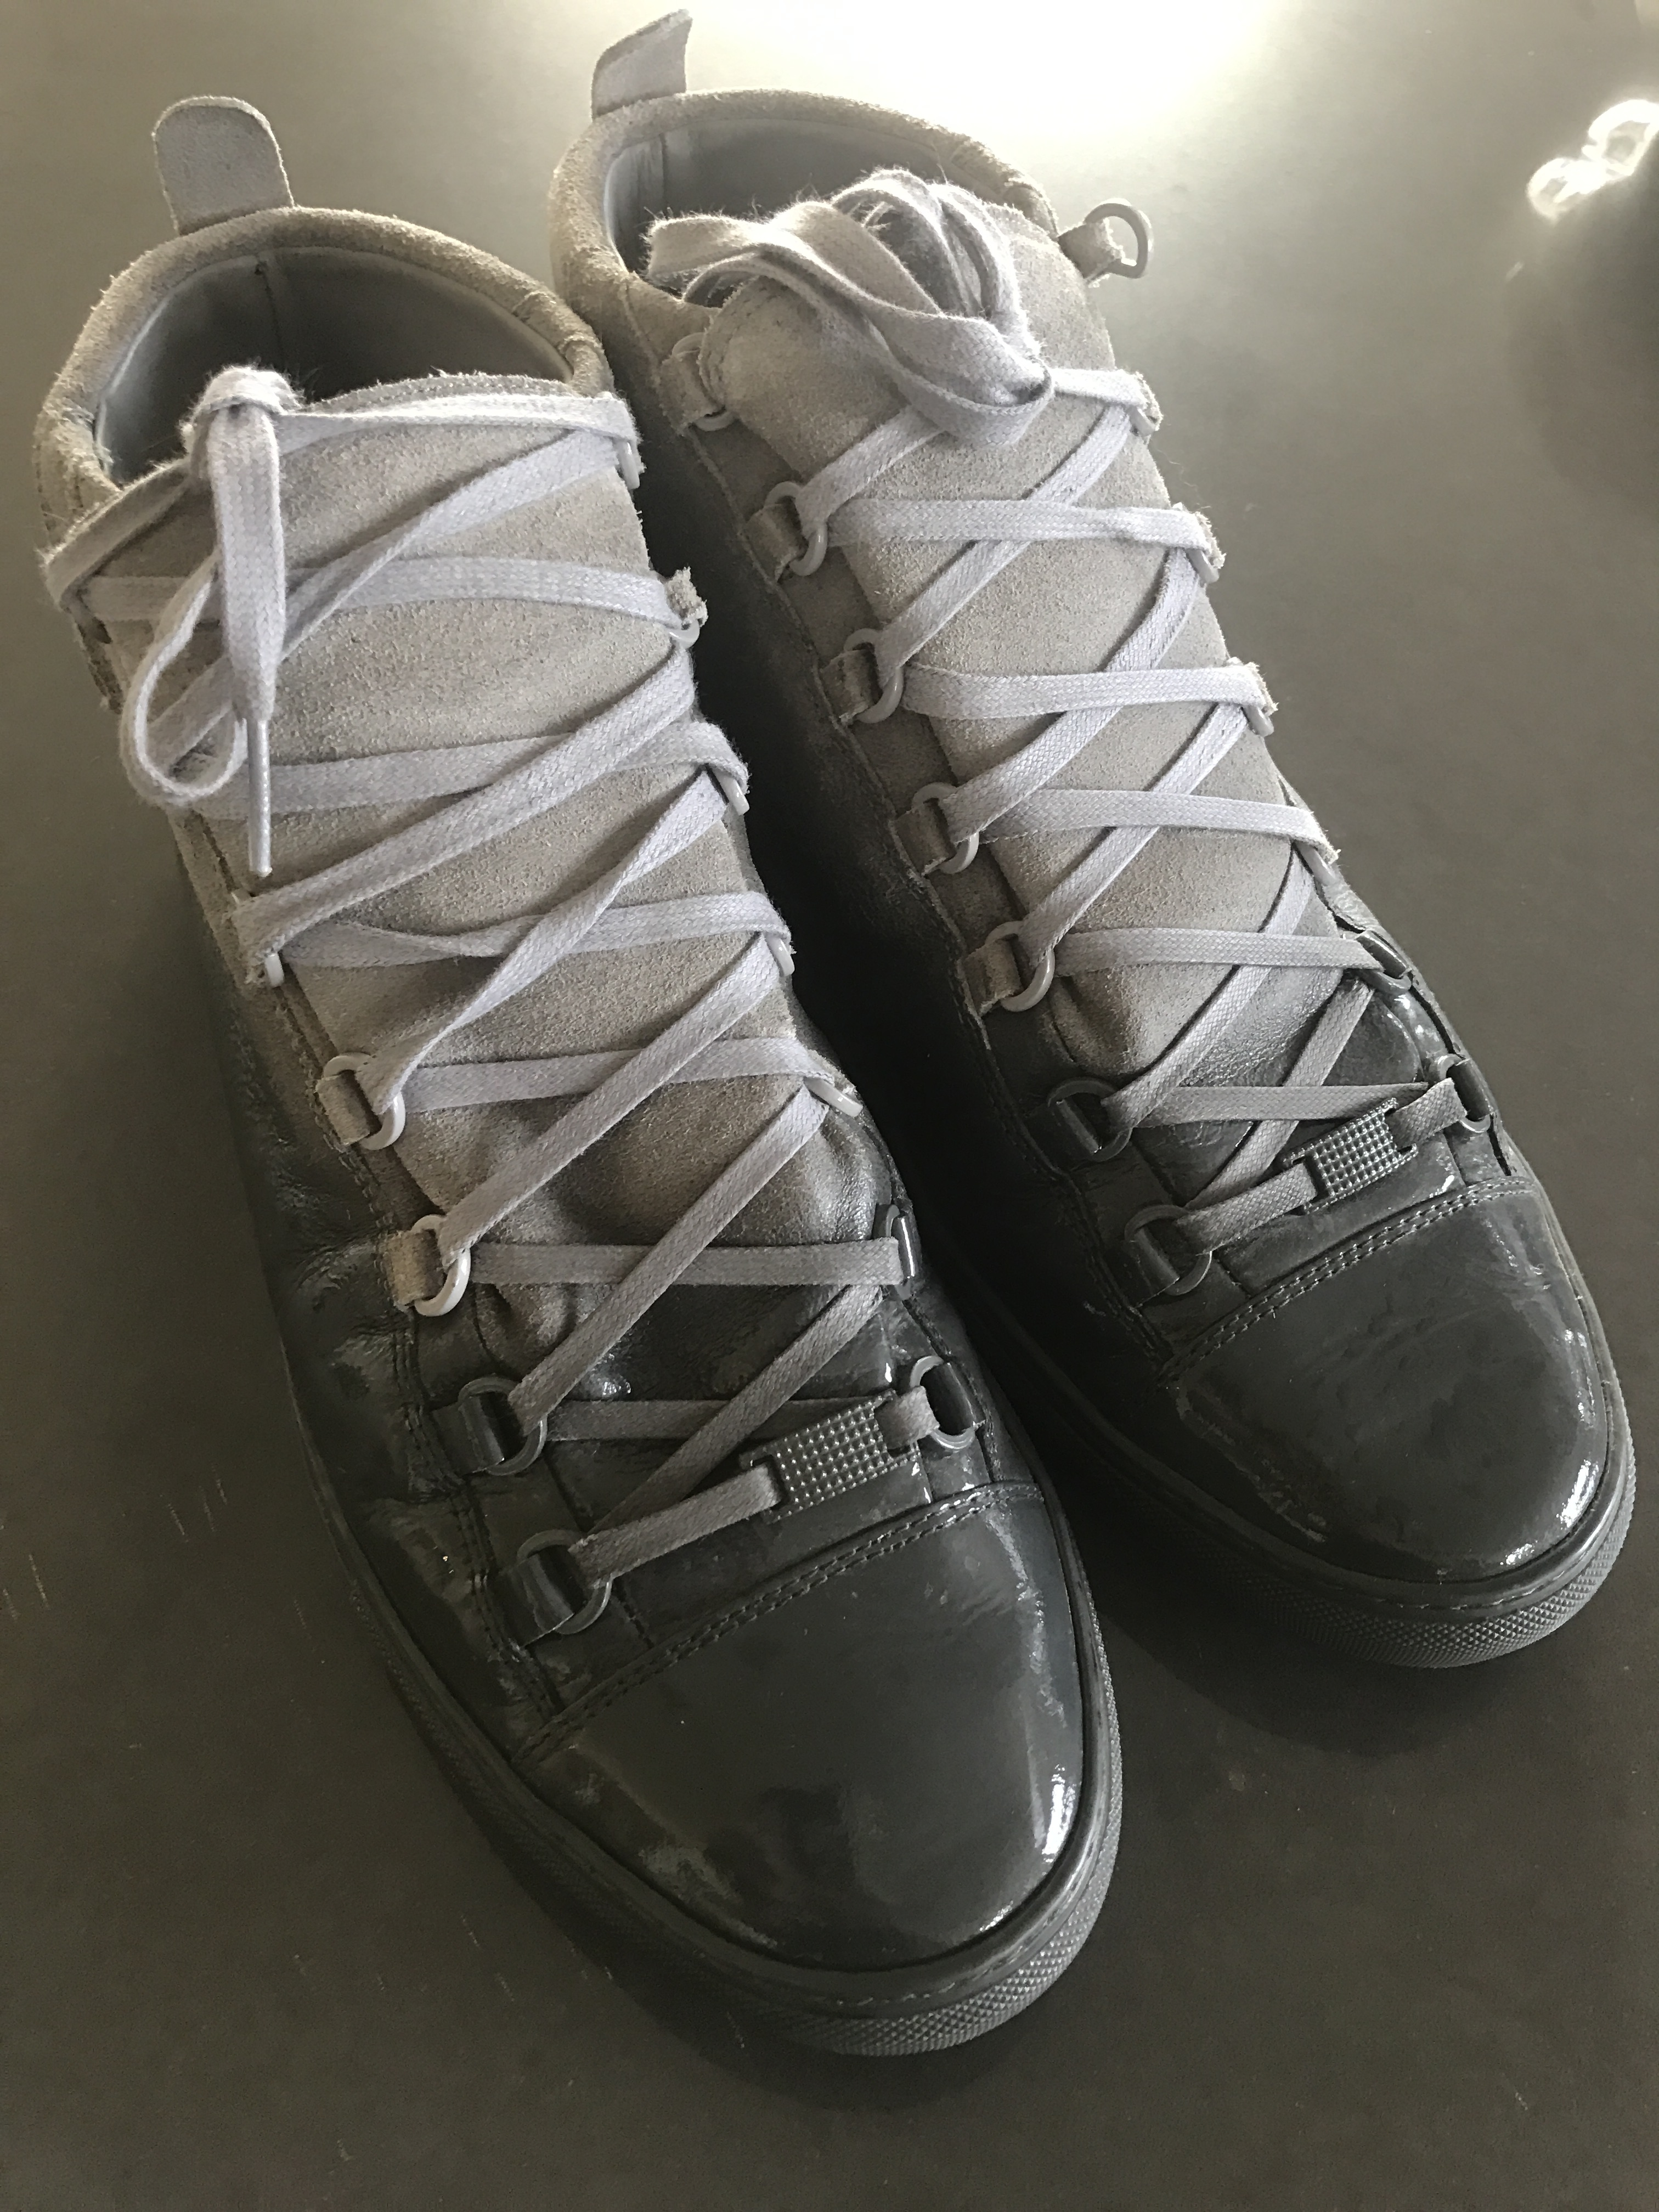 0fa04df192d0 Balenciaga Grey Suede   Patent Leather Ombre Leather Arena High Top ...